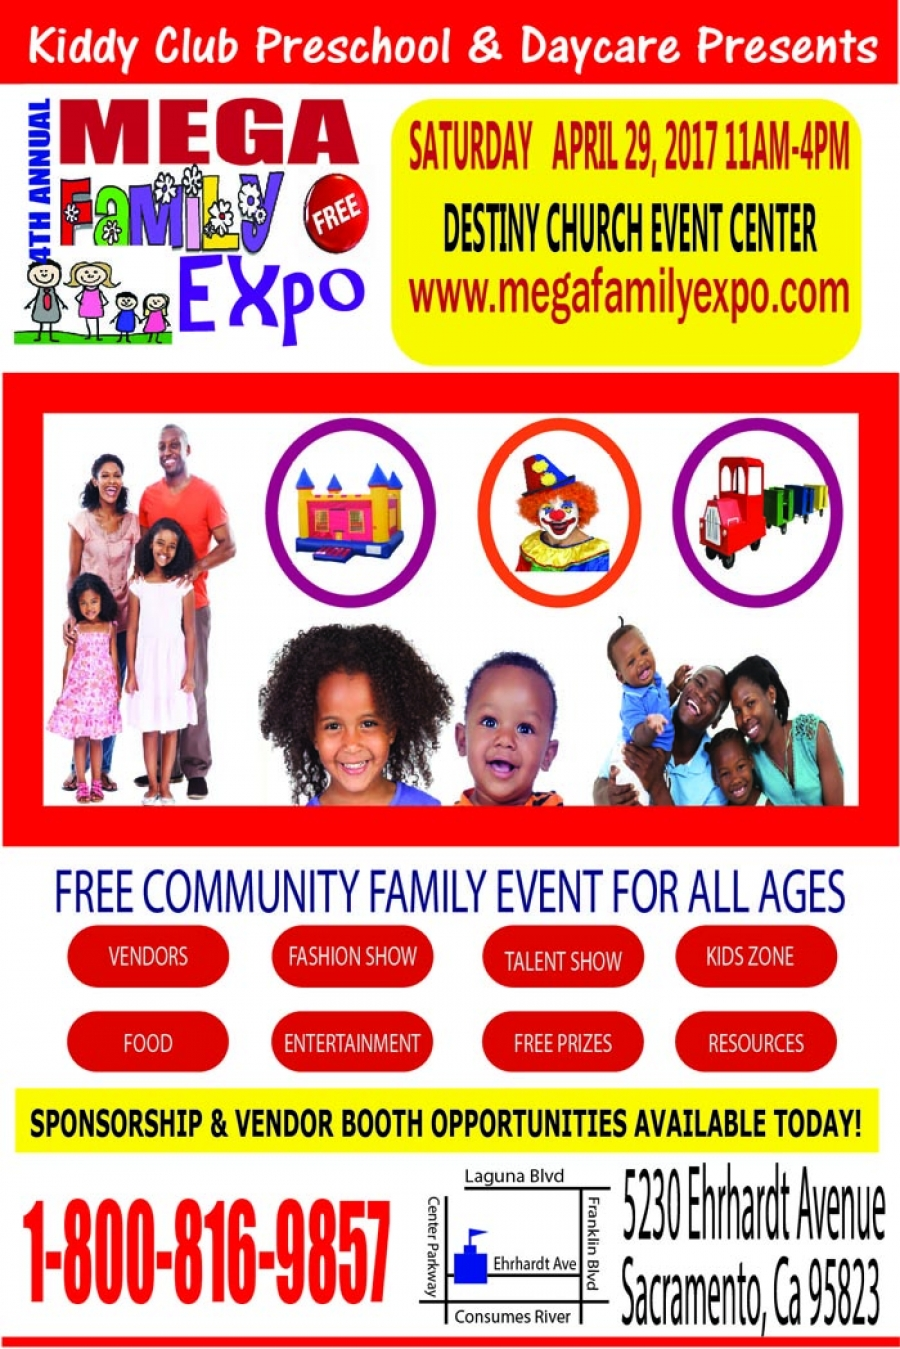 4th Annual MEGA FAMILY EXPO - Saturday, April 29